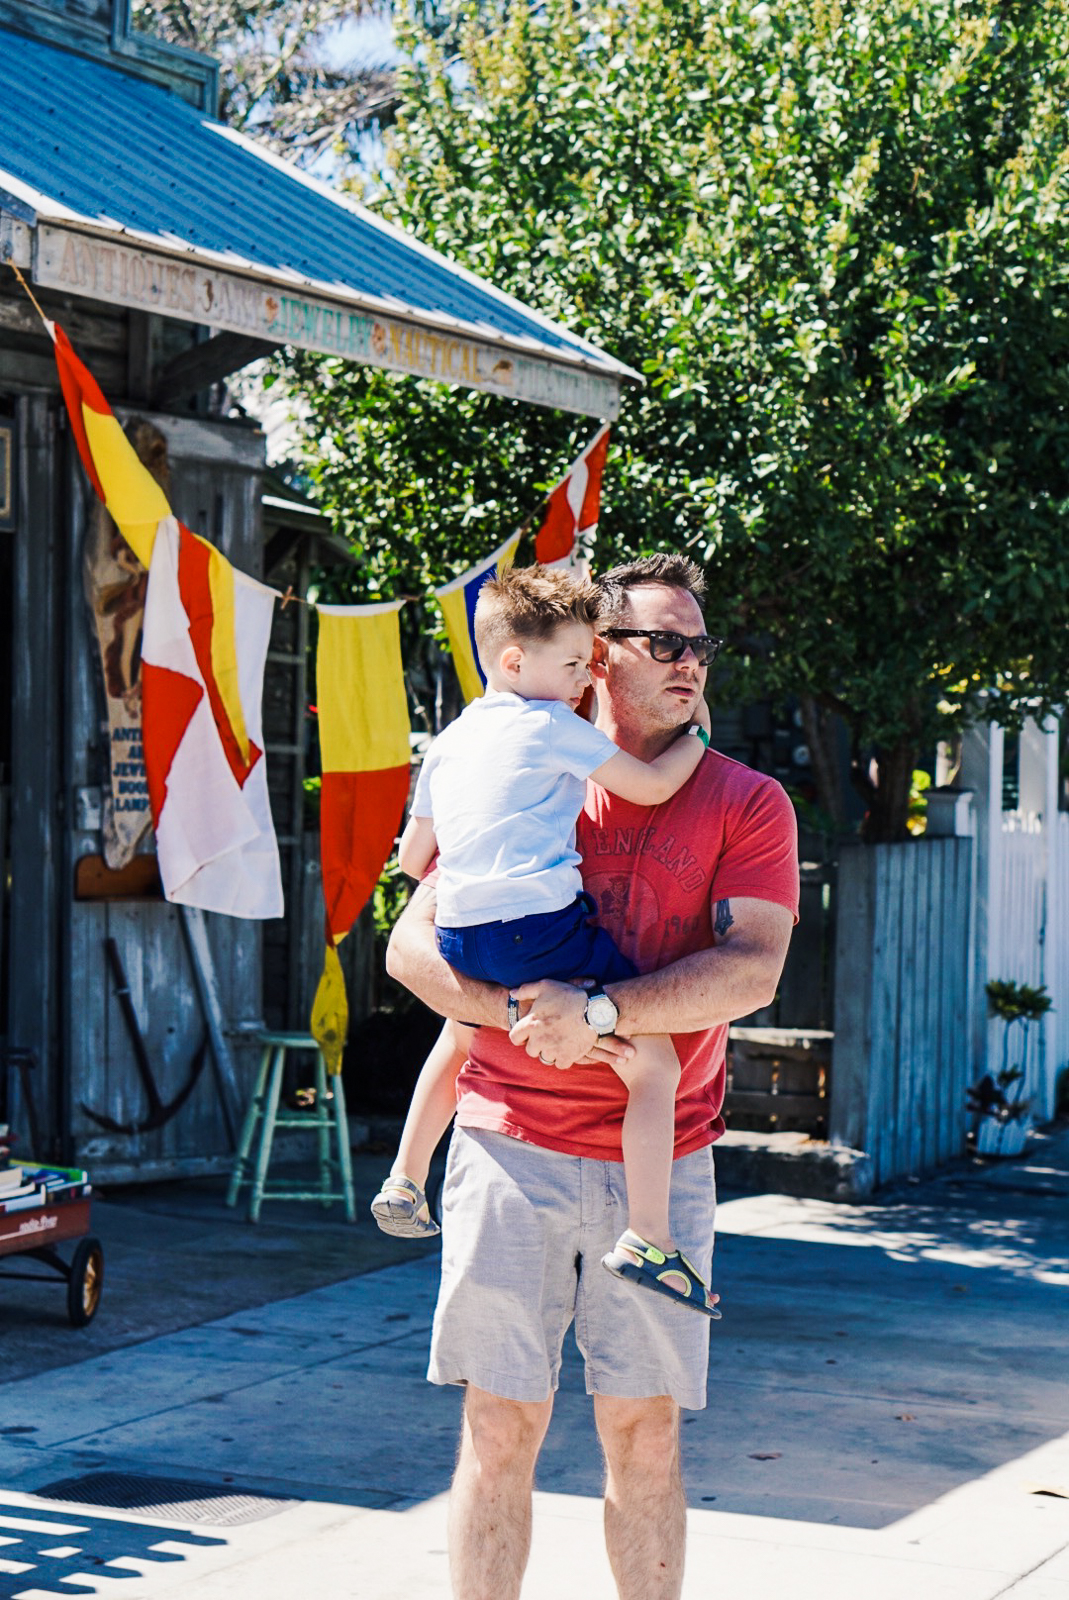 Key West - Things to Do in Key West - Misty Nelson, family travel blogger @frostedevents father and son